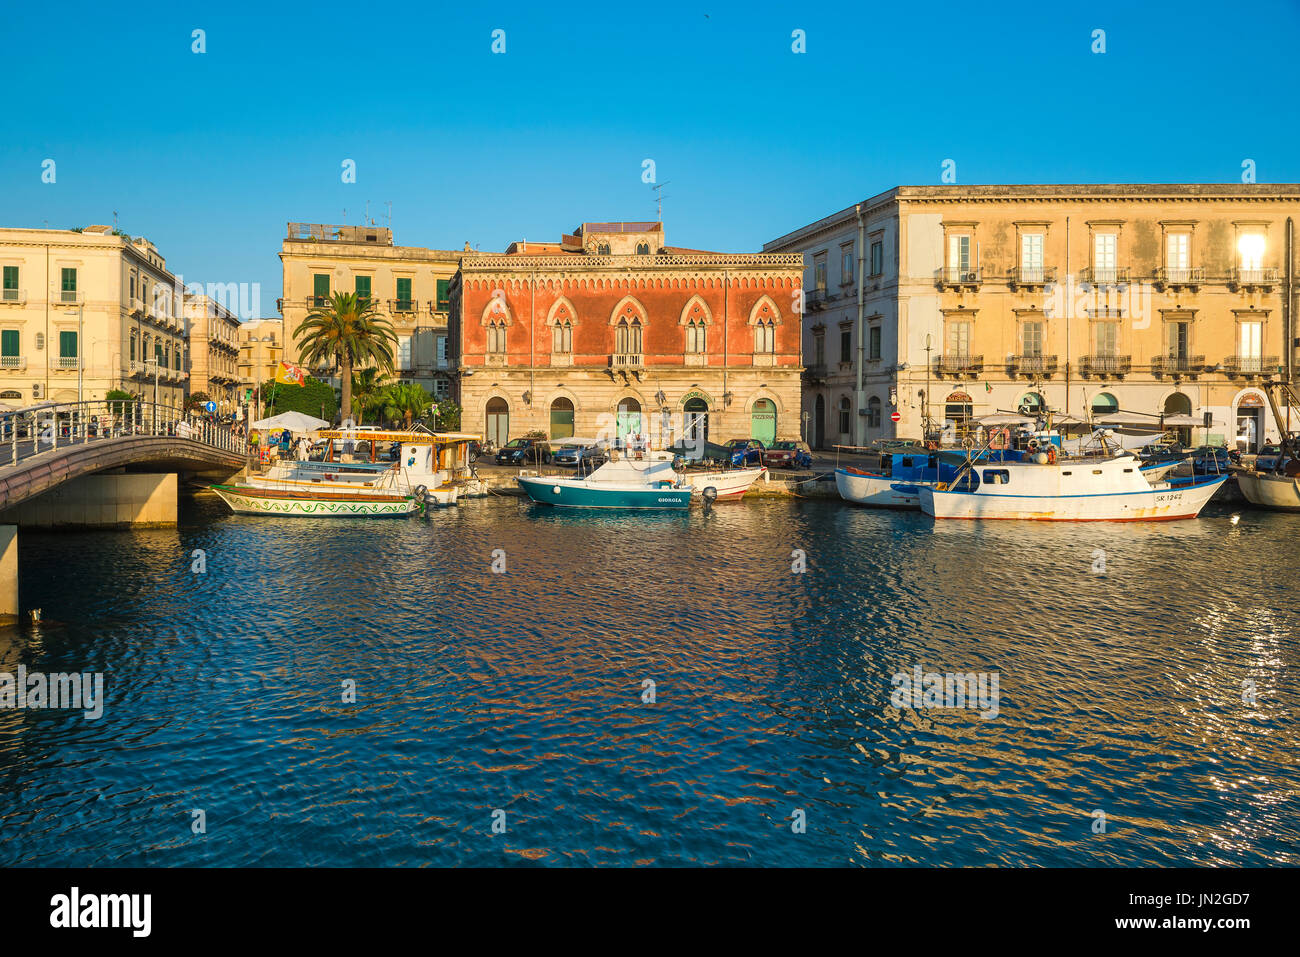 Ortigia Sicily port, view of the renaissance Palazzo Lucchetti and the Darsena Channel that separates Syracuse from the island of Ortigia, Sicily. - Stock Image